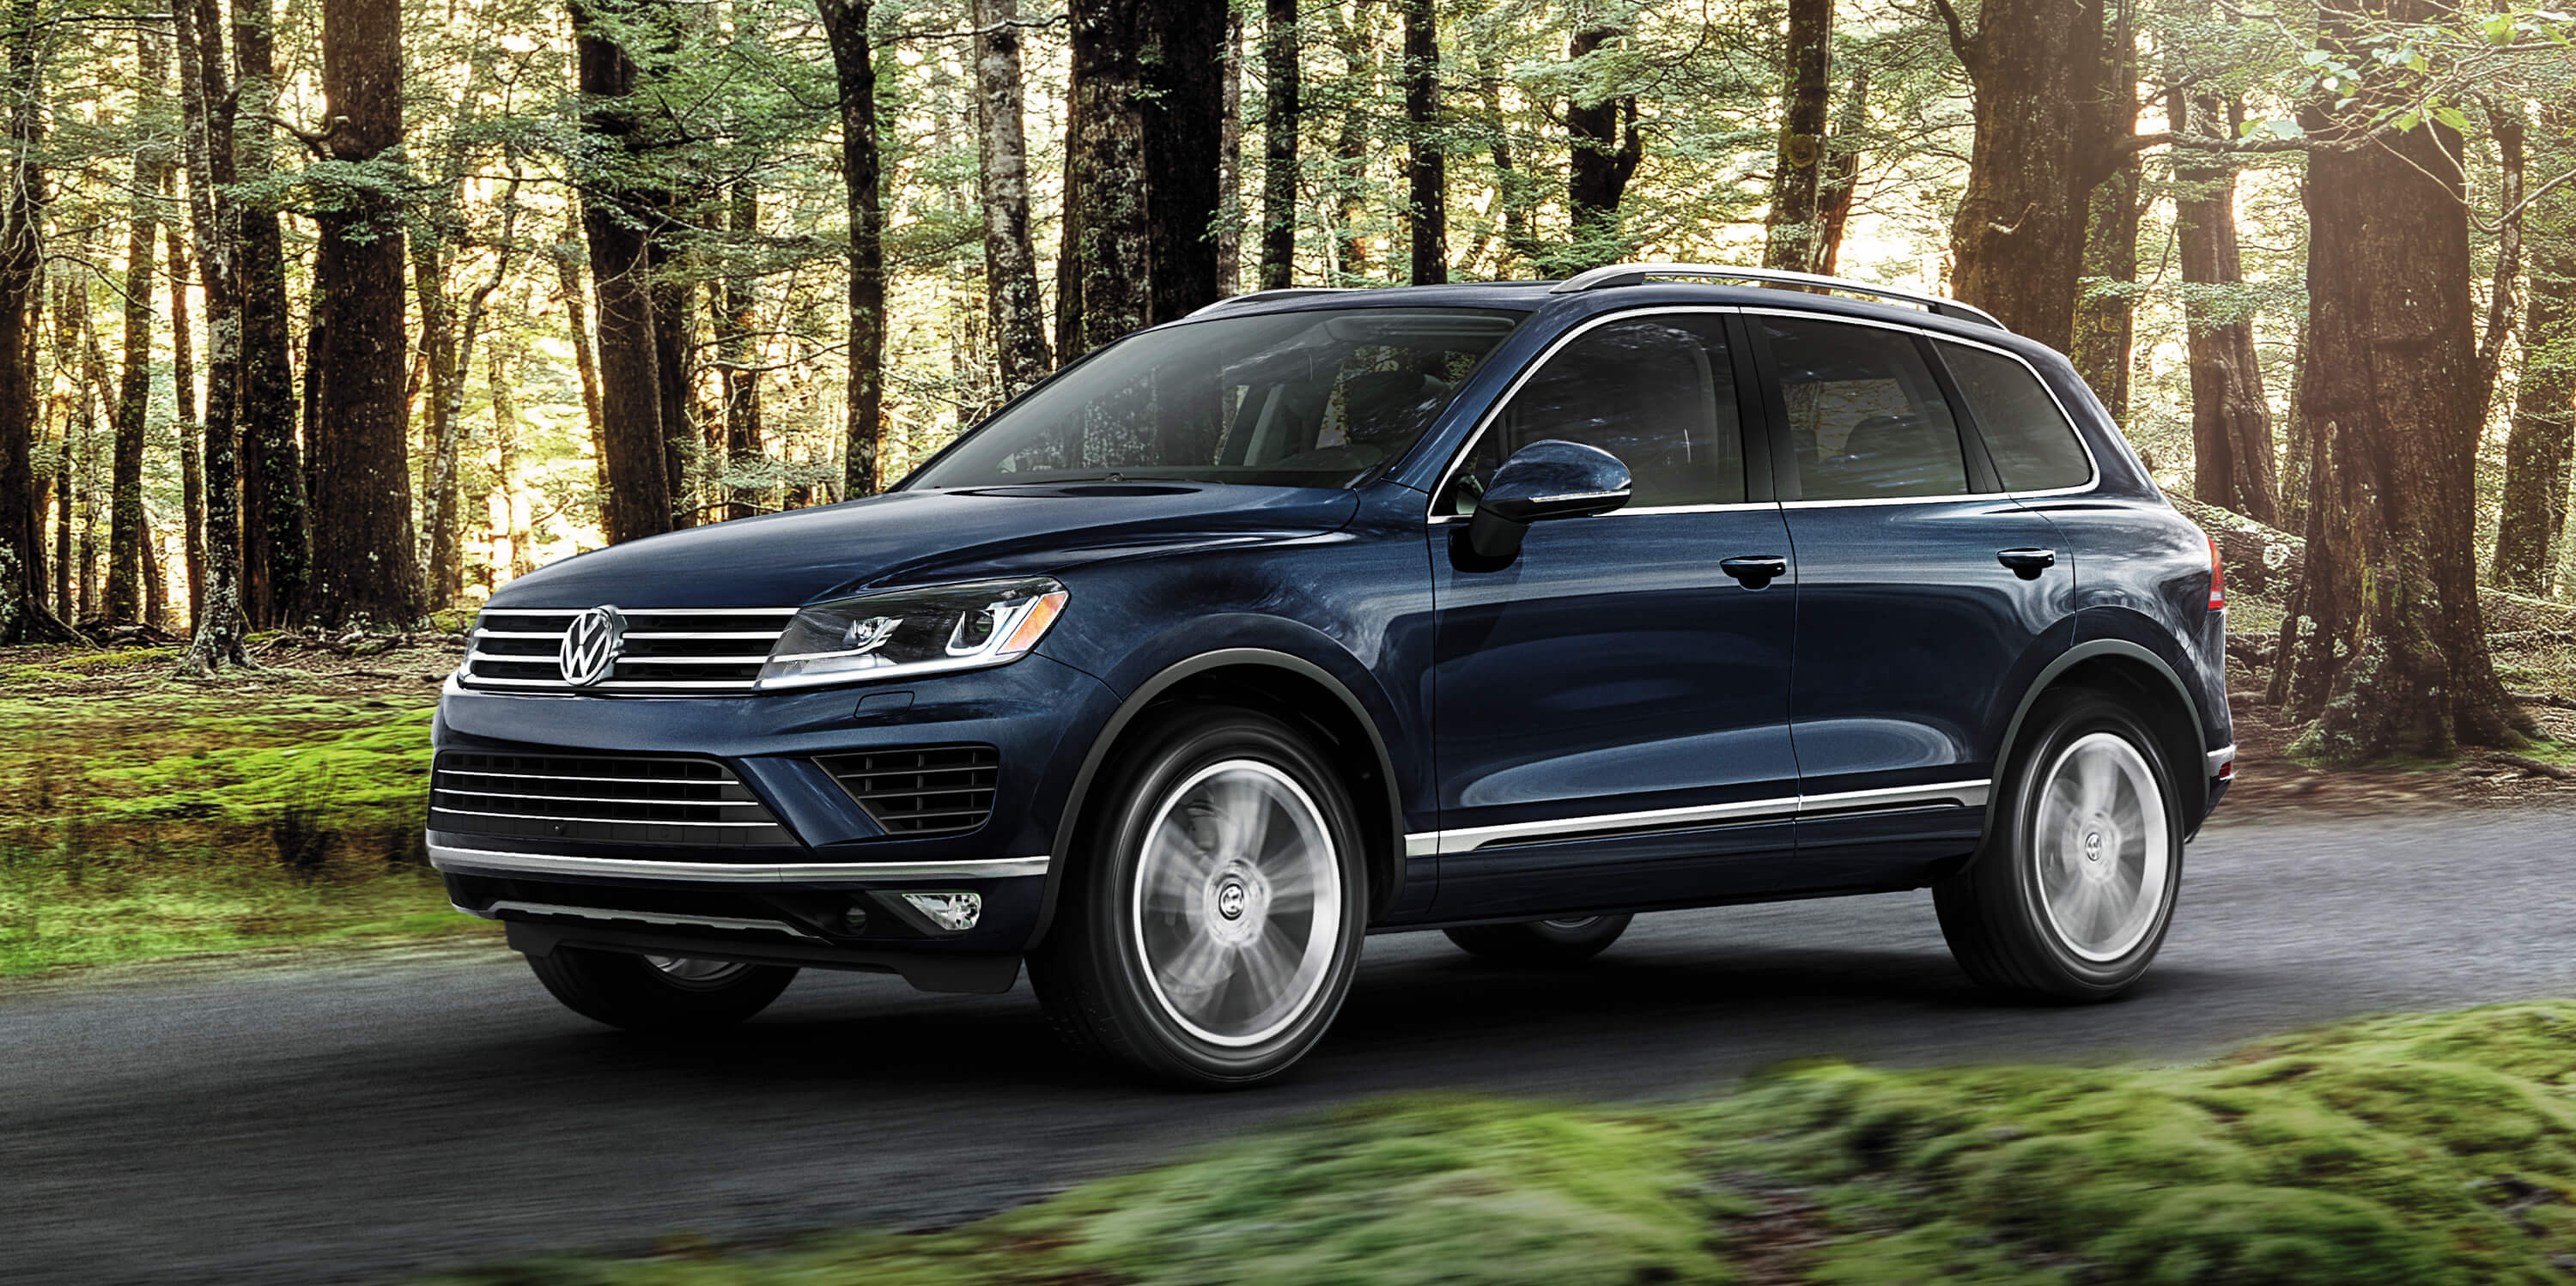 New 2015 Vw Touareg Lease And Finance Prices Near Boston Ma